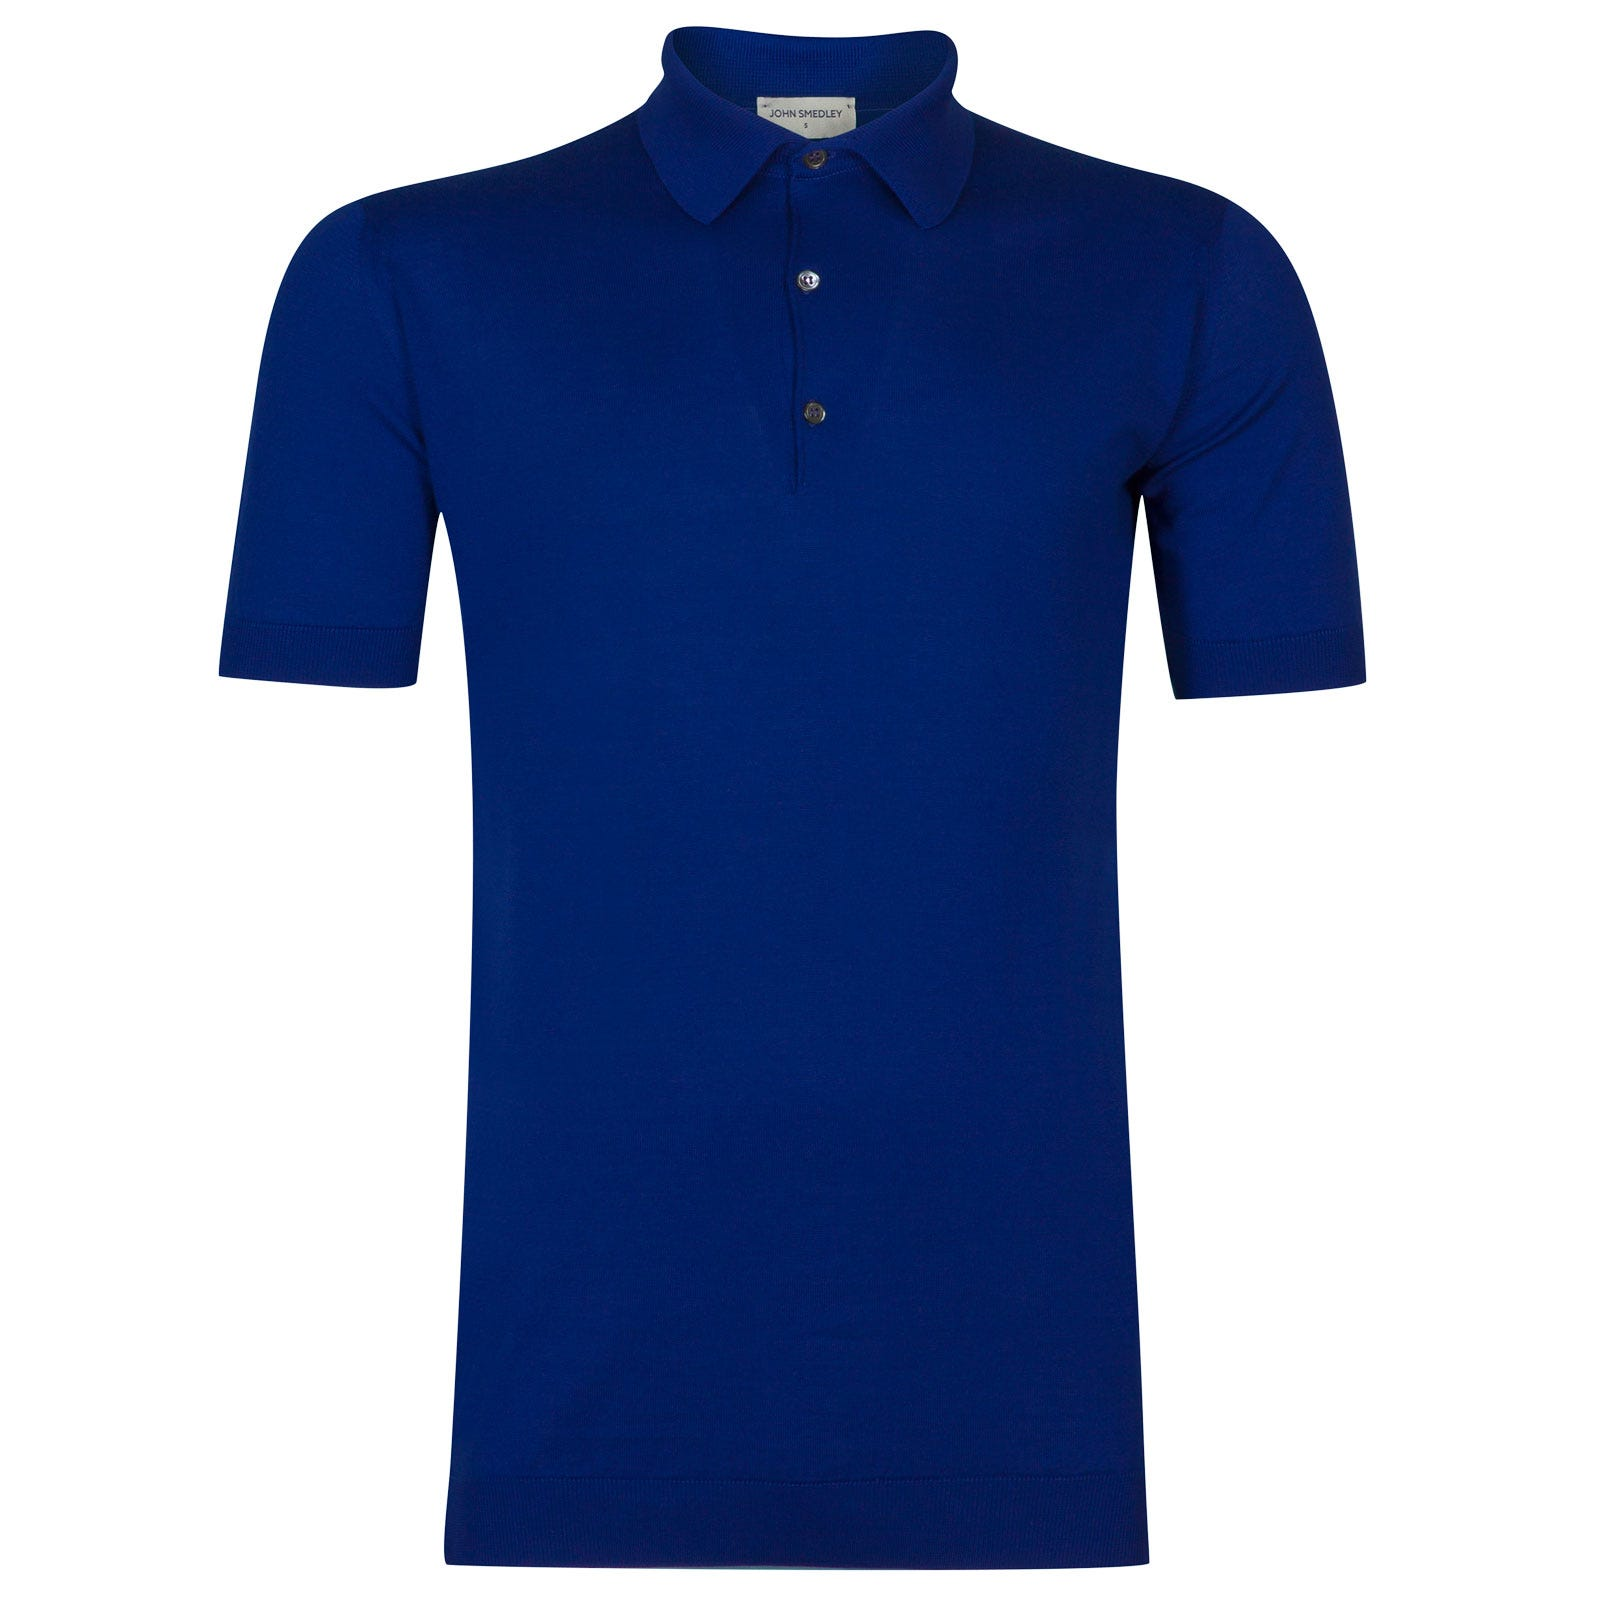 John Smedley adrian Sea Island Cotton Shirt in Coniston Blue-M